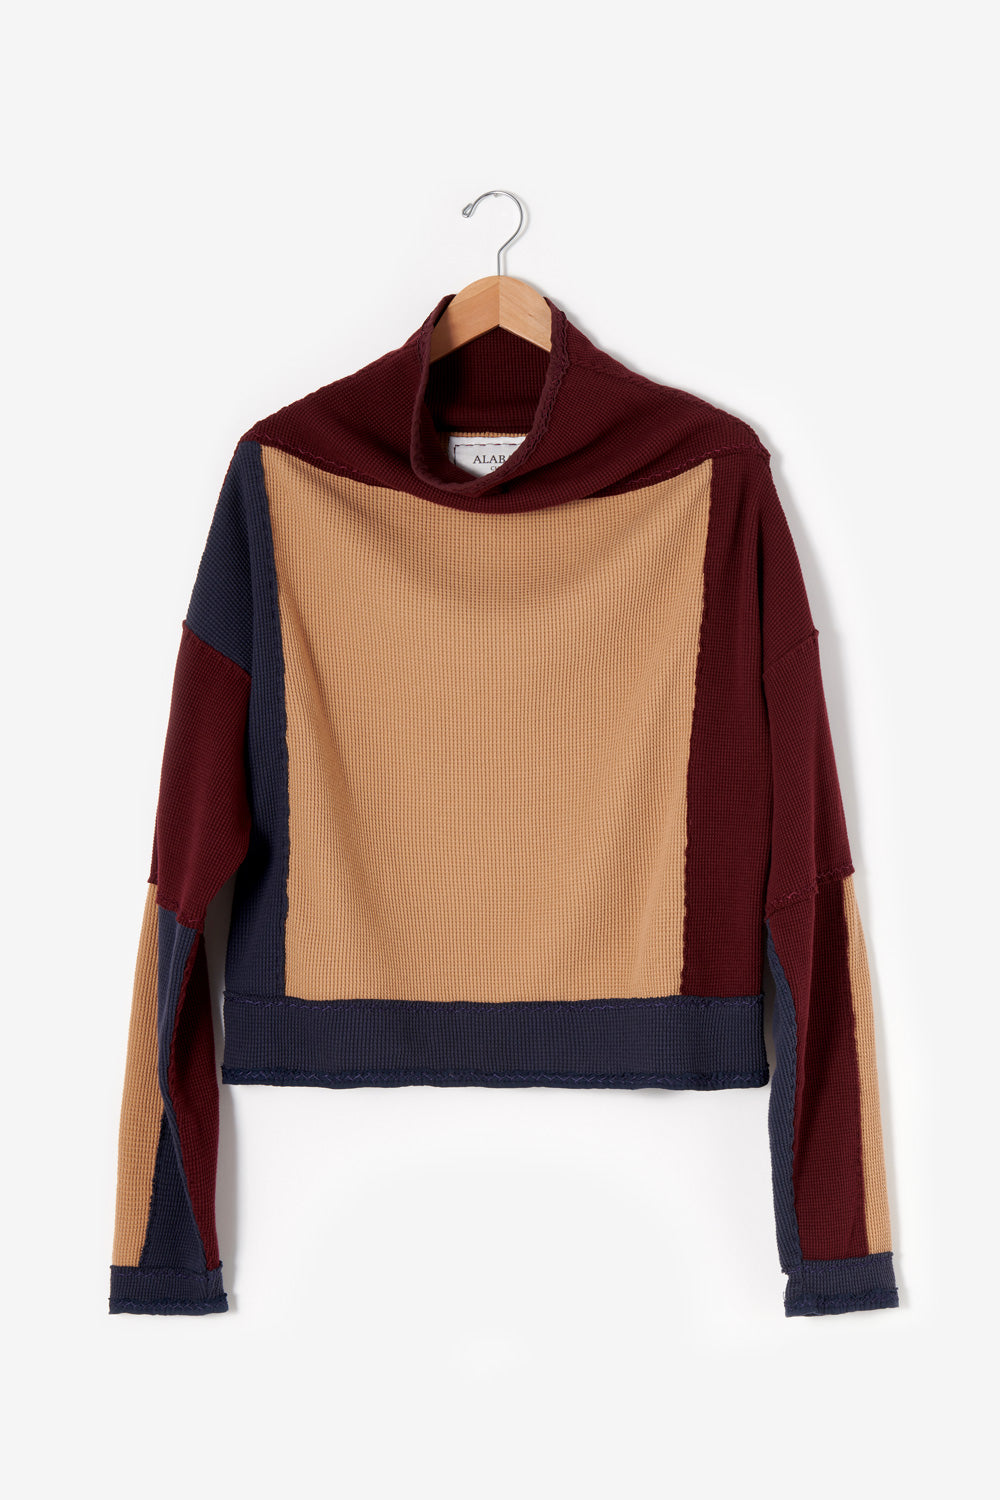 Alabama Chanin Artisan-Designed Zero Waste Waffle Sweatshirt in Camel and Navy Organic Cotton Waffle and Heavy-weight rib in Plum One-of-a-kind